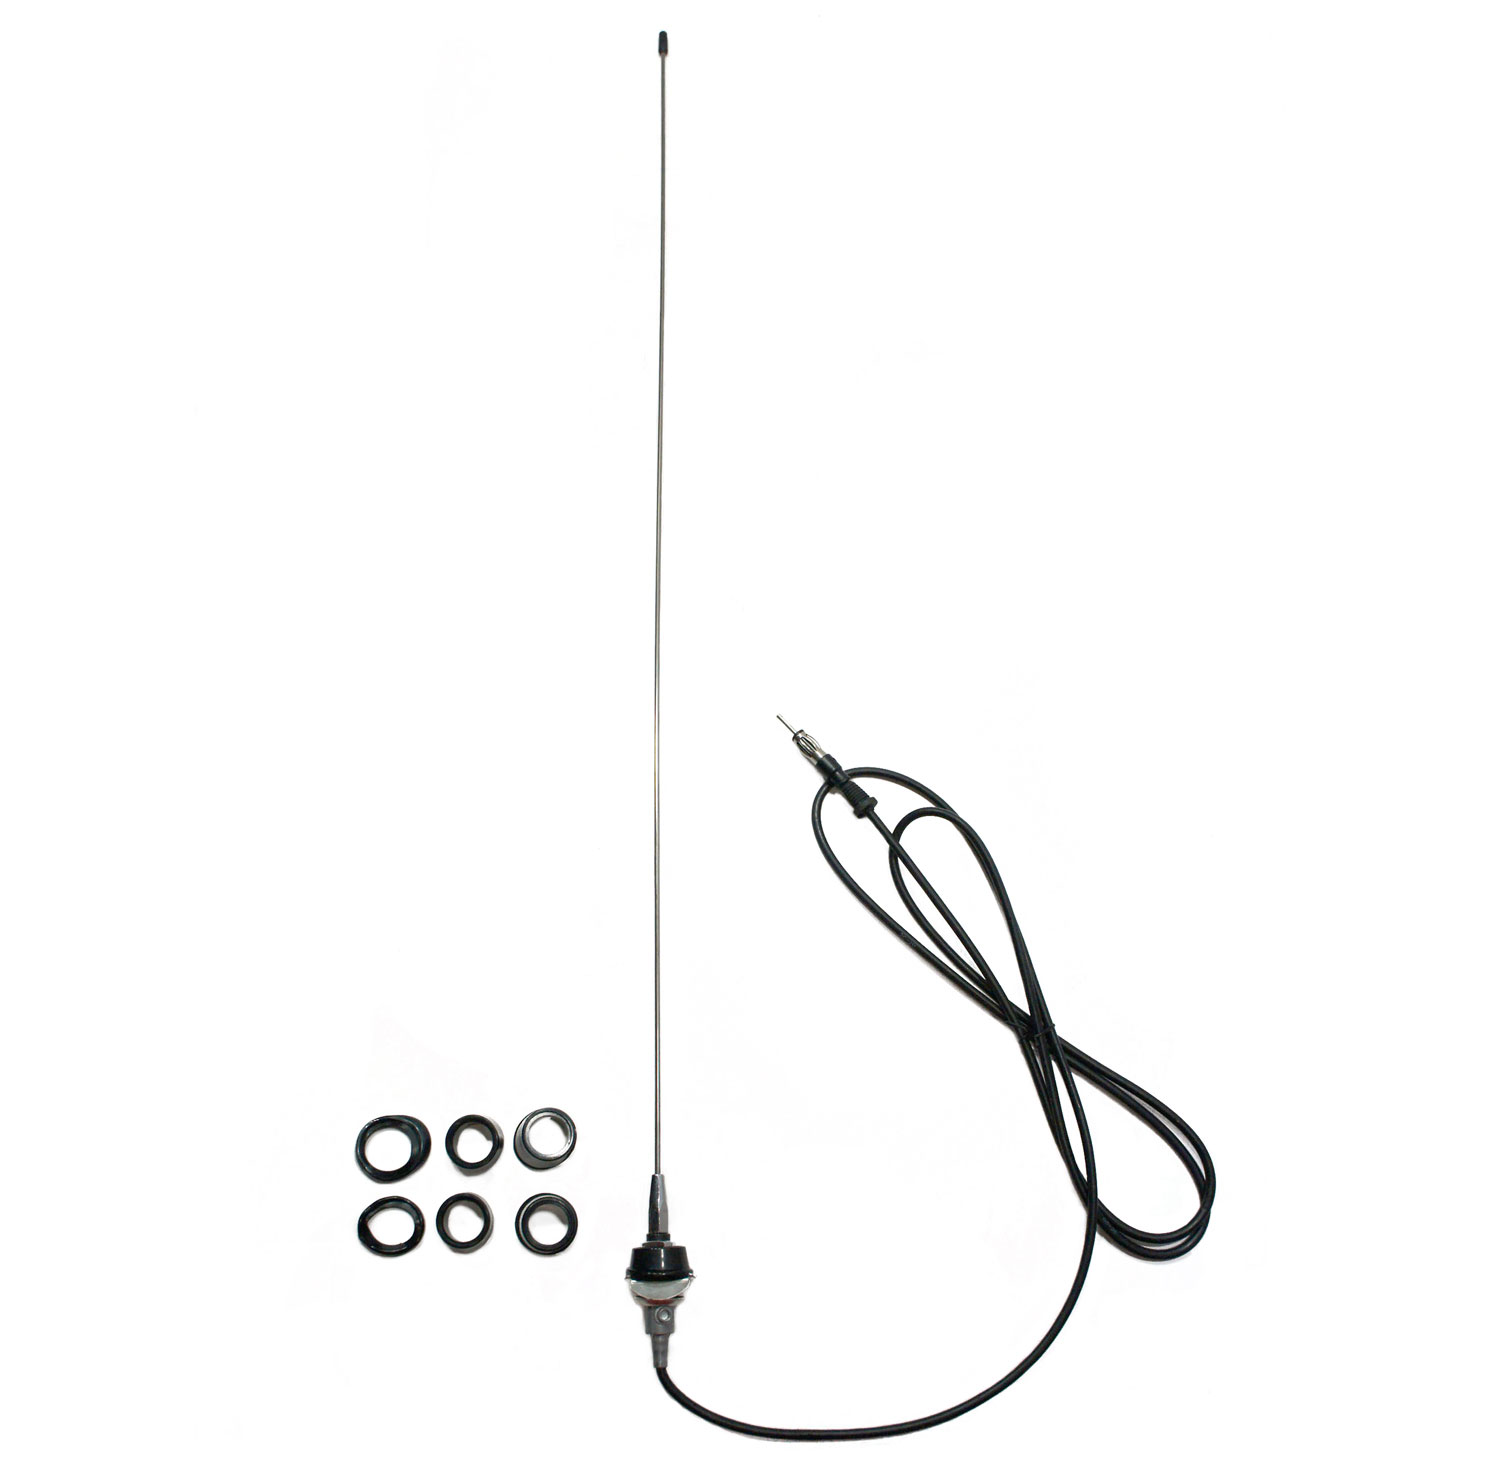 service manual  2010 jeep wrangler antenna repair